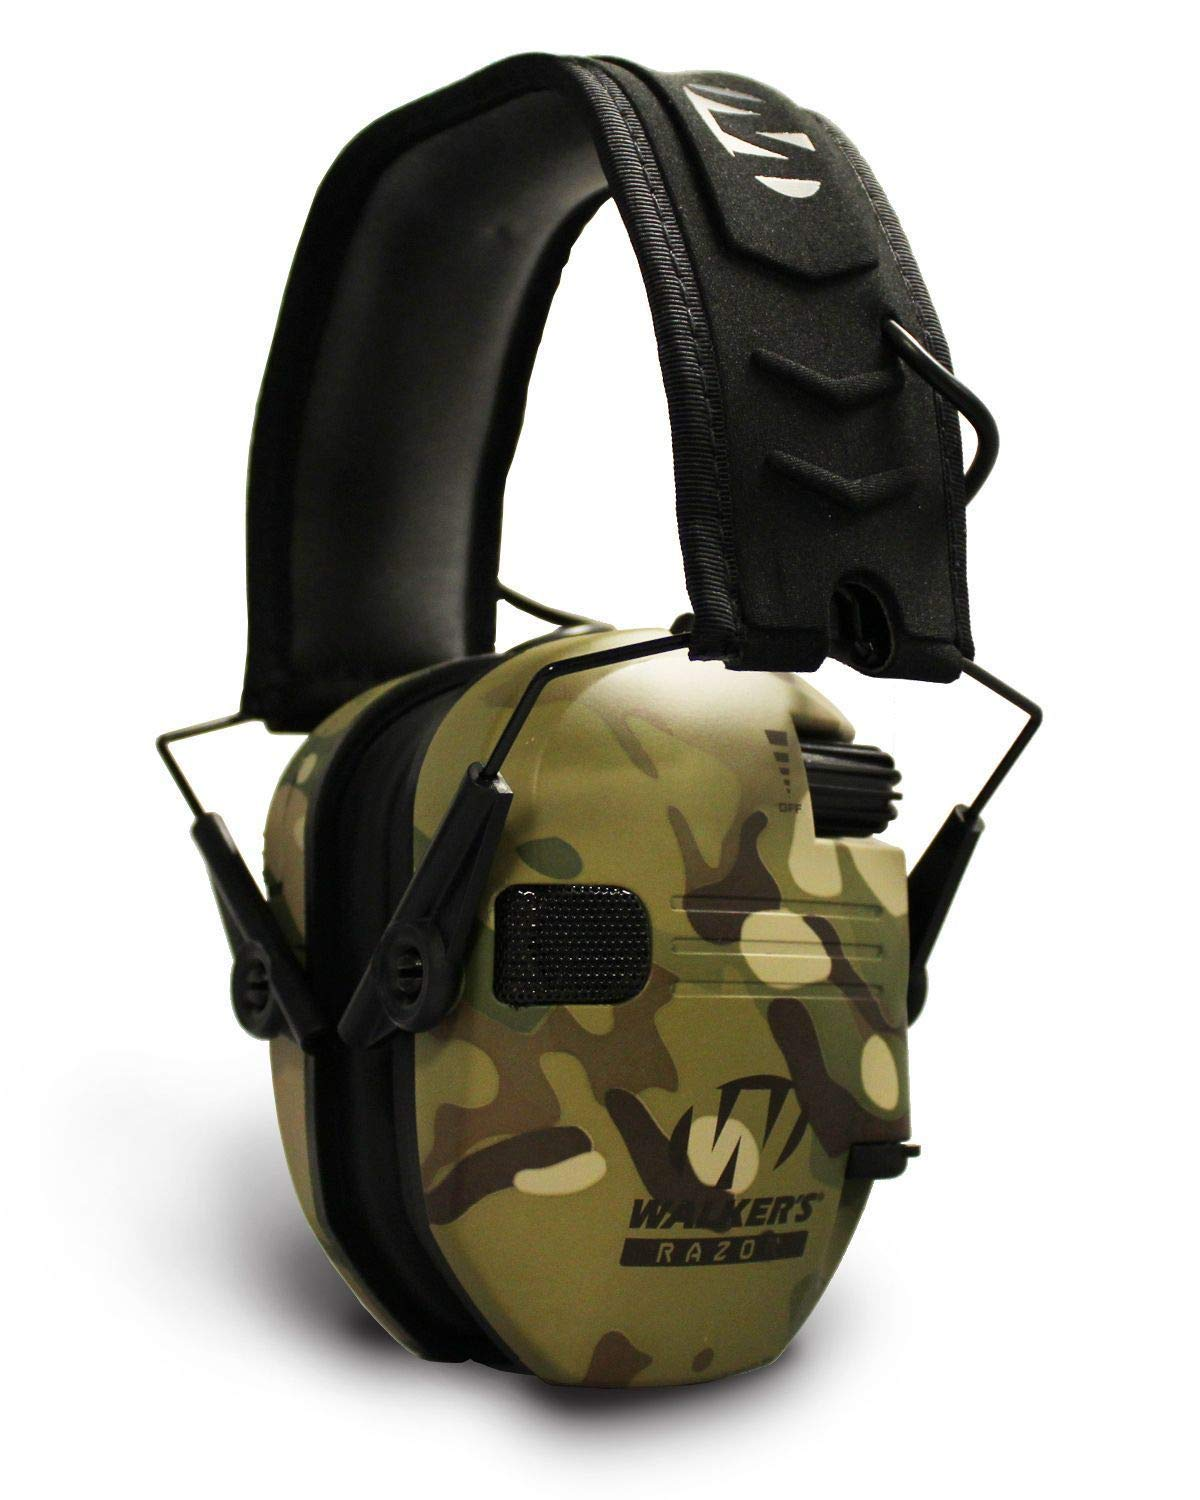 Walkers Razor Slim Electronic Shooting Hearing Protection Muff, Multicam, Tan (Sound Amplification and Suppression) with Shooting Glasses Kit by Walkers (Image #4)